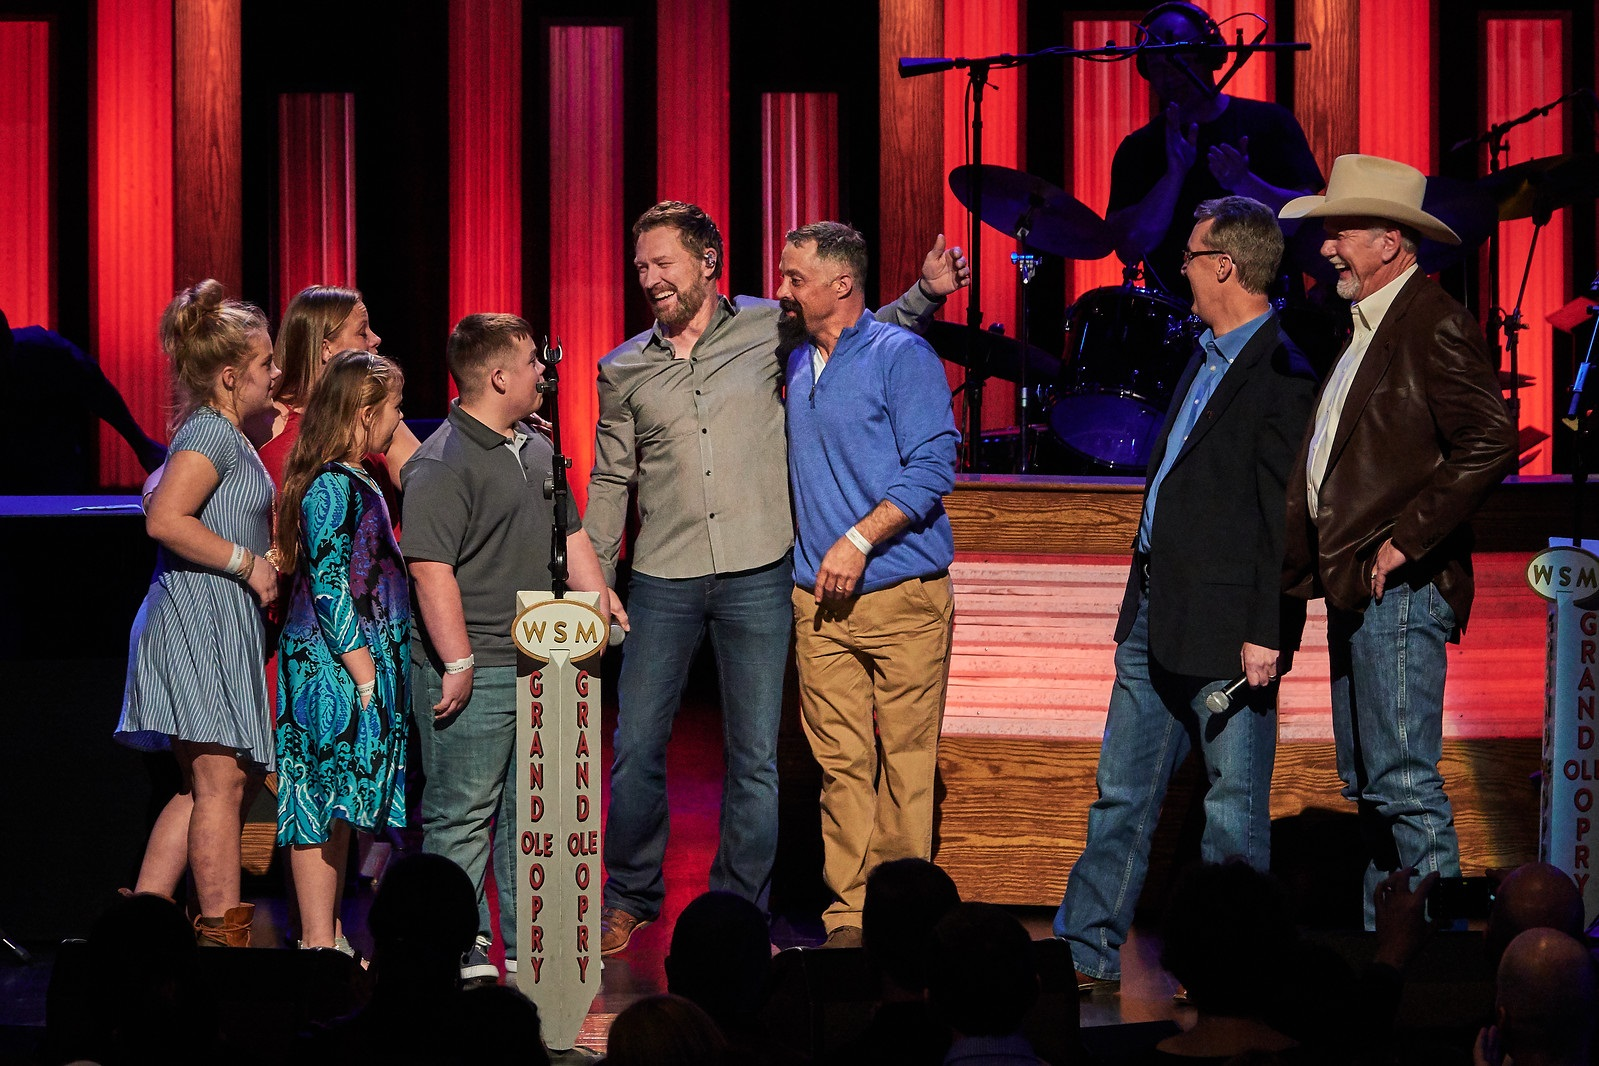 Craig Morgan surprises his friend, U.S. Army SFC Josh Ferguson, and family Friday night at the Grand Ole Opry with the news they are receiving a custom-built, mortgage-free home in Dickson County (Tennessee) from Operation FINALLY HOME. Joining Craig and the Ferguson family on stage were Operation FINALLY HOME Founder Dan Wallrath and Executive Director Rusty Carroll. Photo Credit: Rick Stufflebean - 501concepts